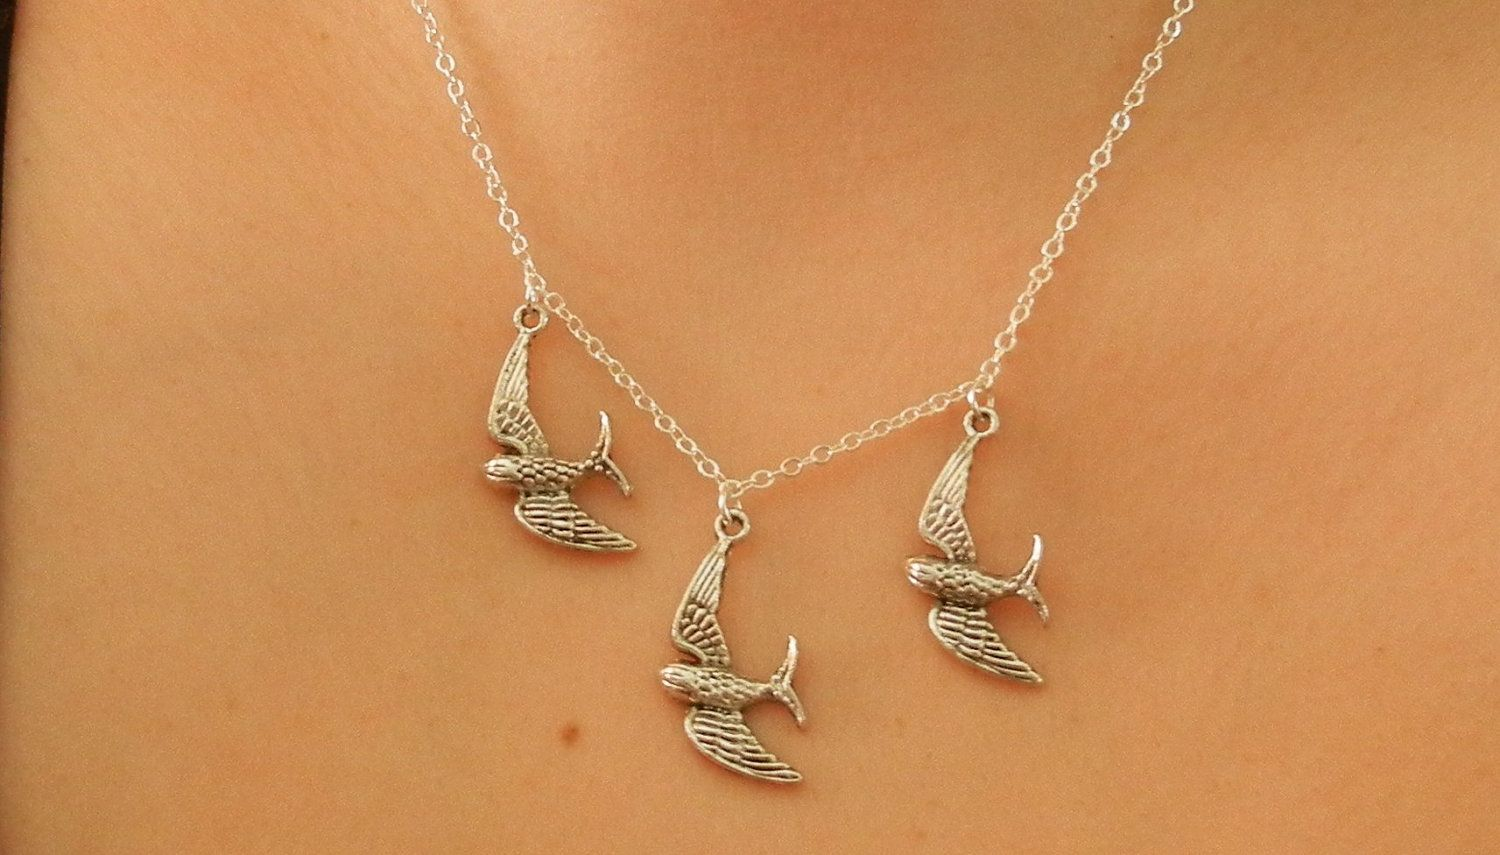 Divergent Tris three flying bird tattoo Necklace. $17.00 ...